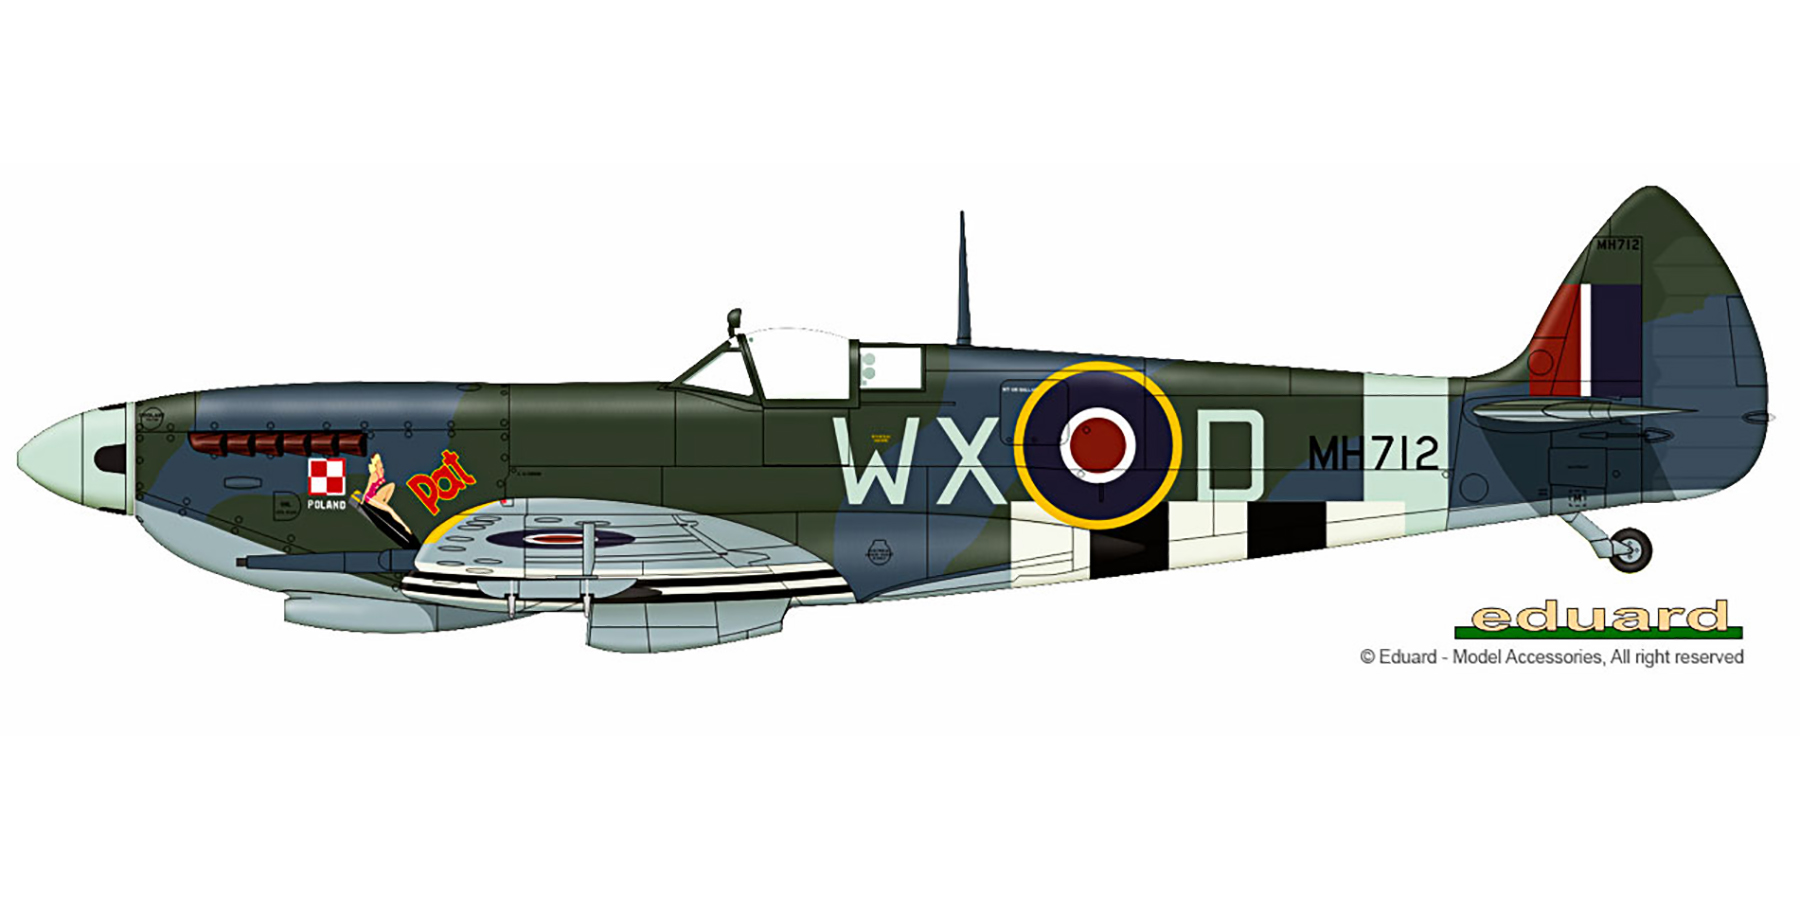 Spitfire MkIXc RAF 302Sqn WXD MH712 England June 1944 V0A